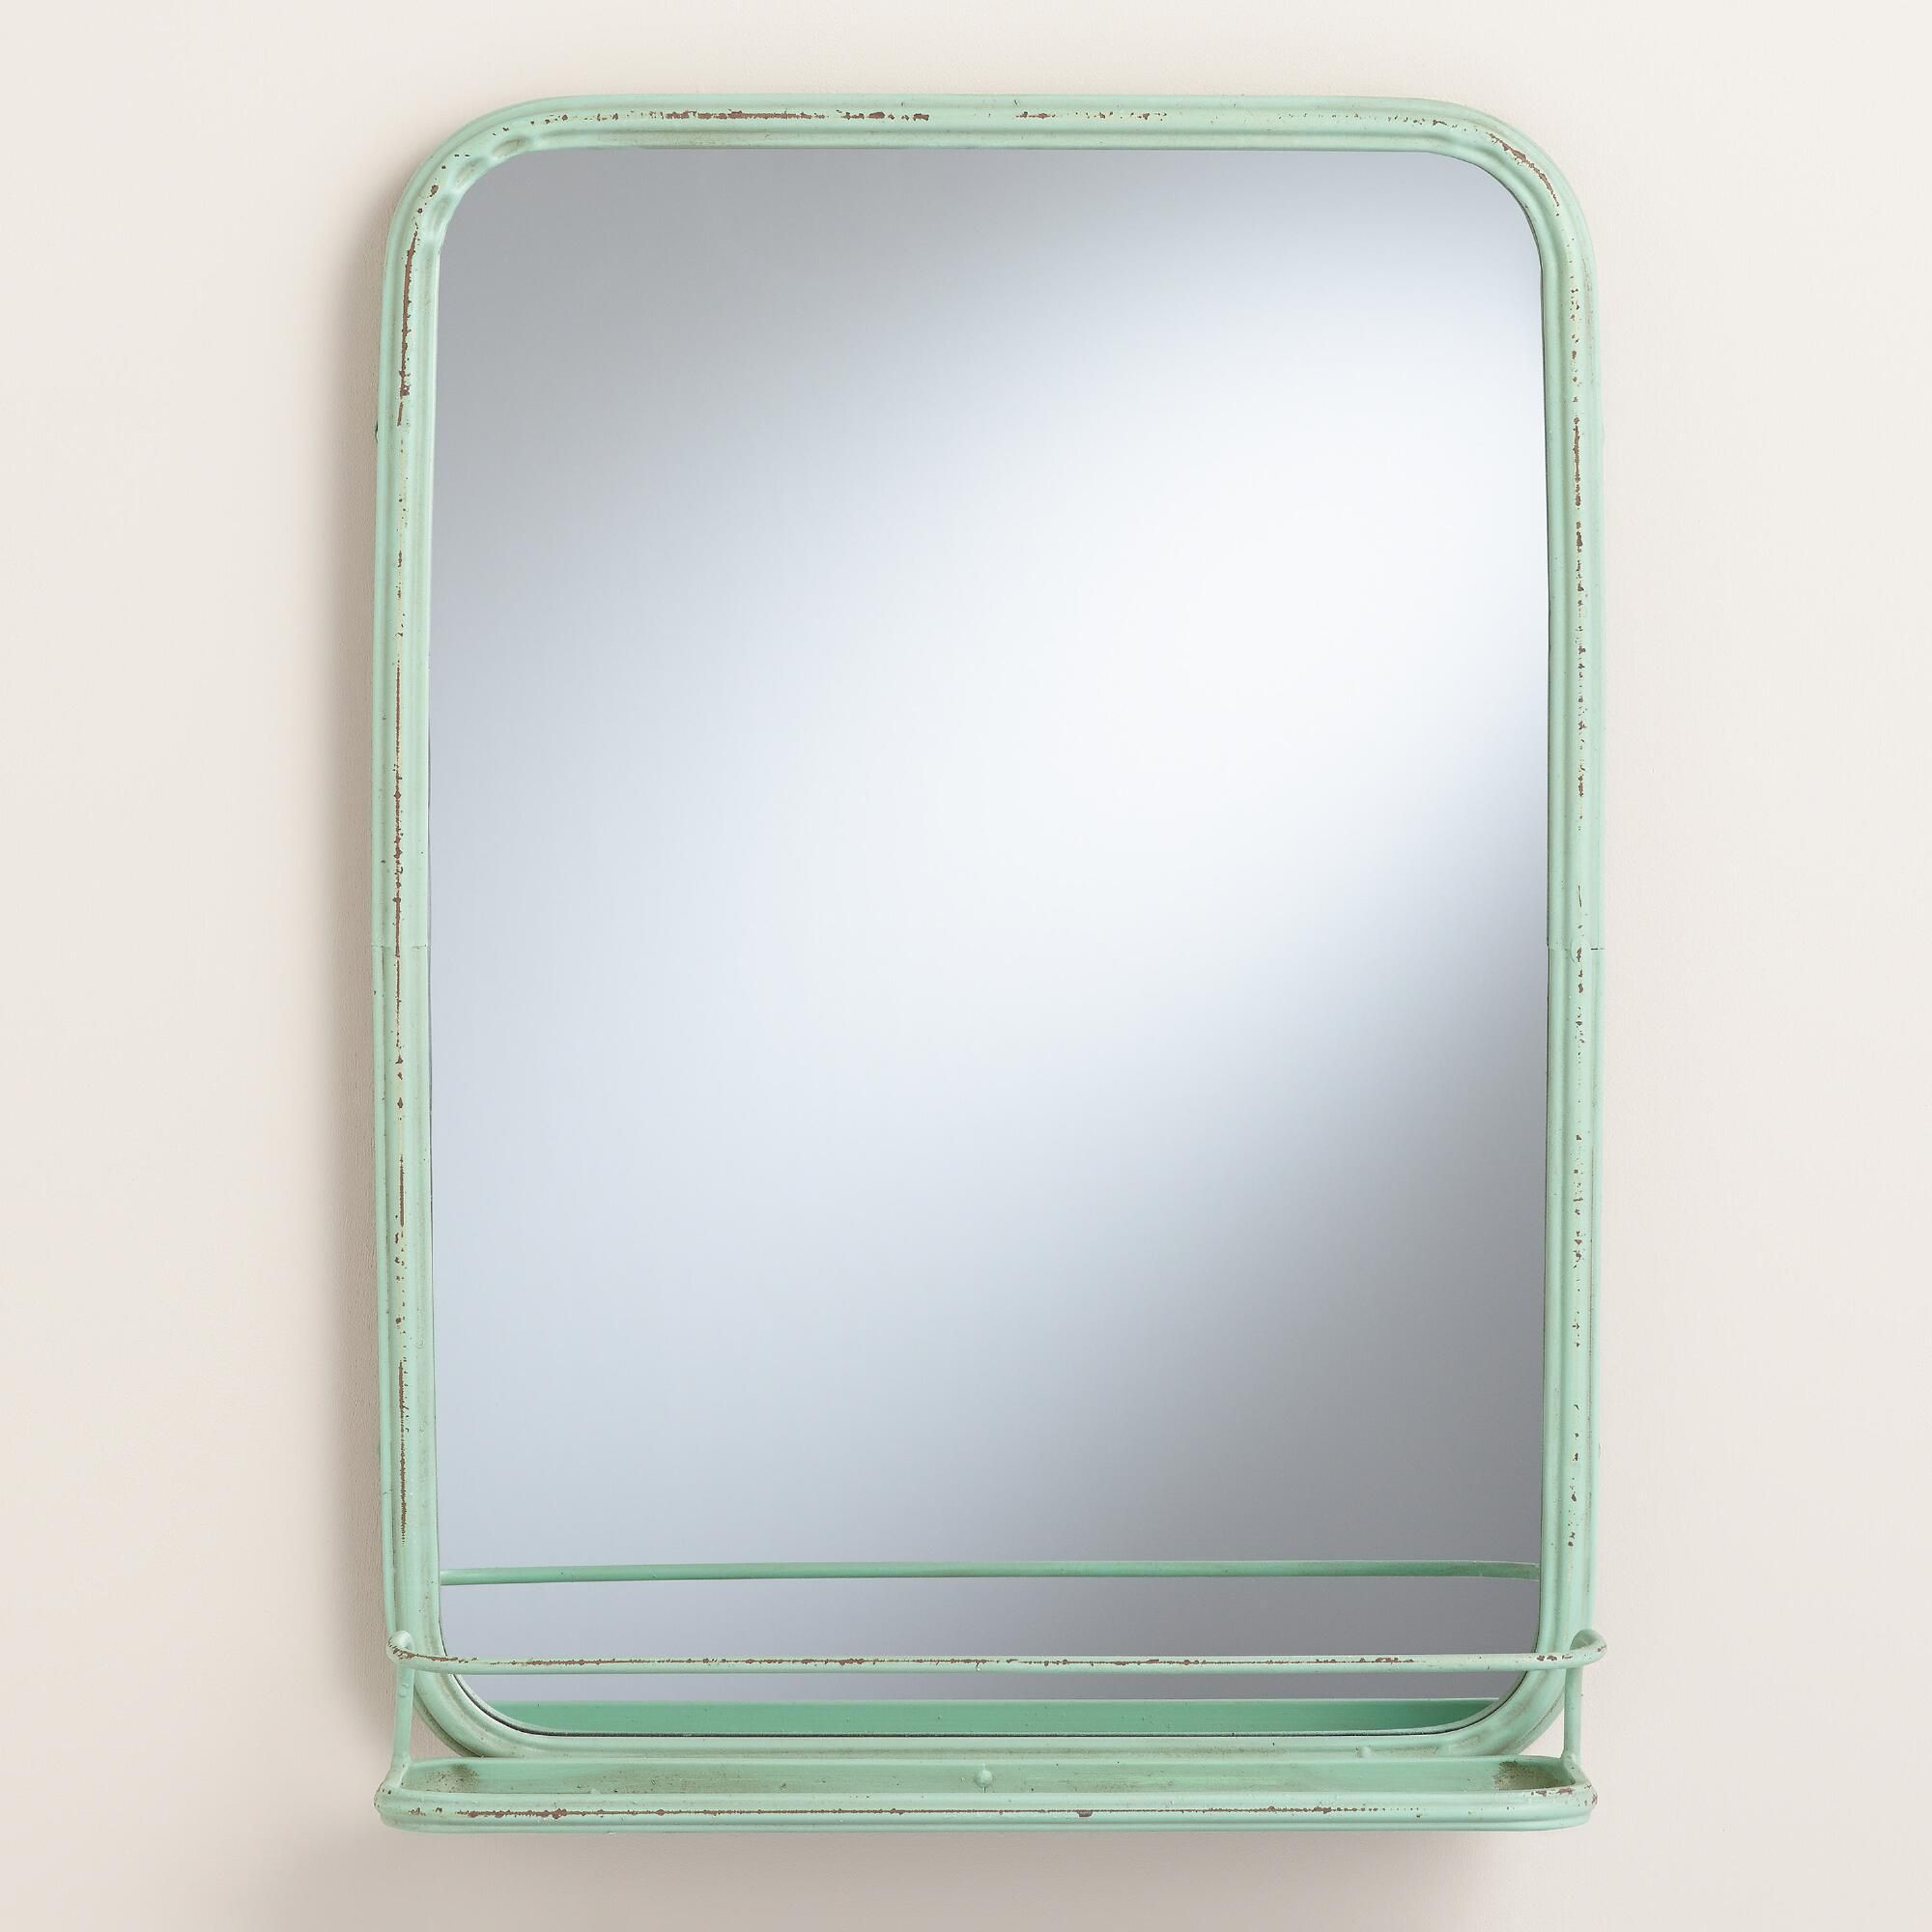 Bathroom Mirror Tray aqua josie bath mirror with tray | trays, bath and remodel bathroom